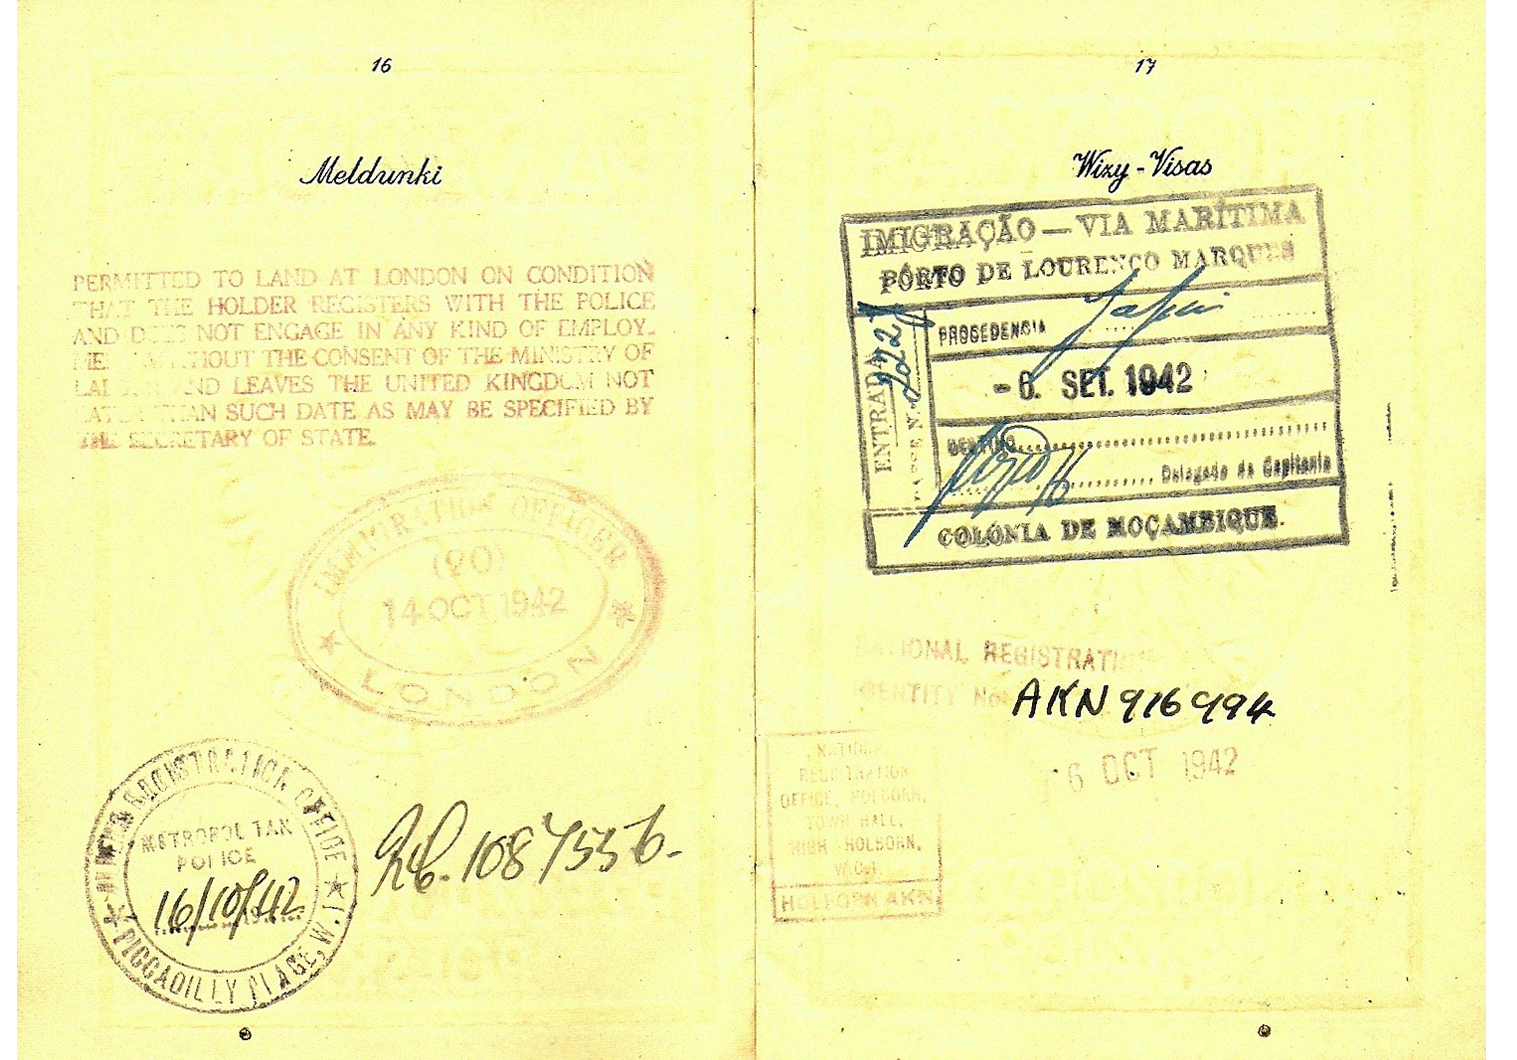 Mozambique exchange of Allied and Enemy personnel passport image